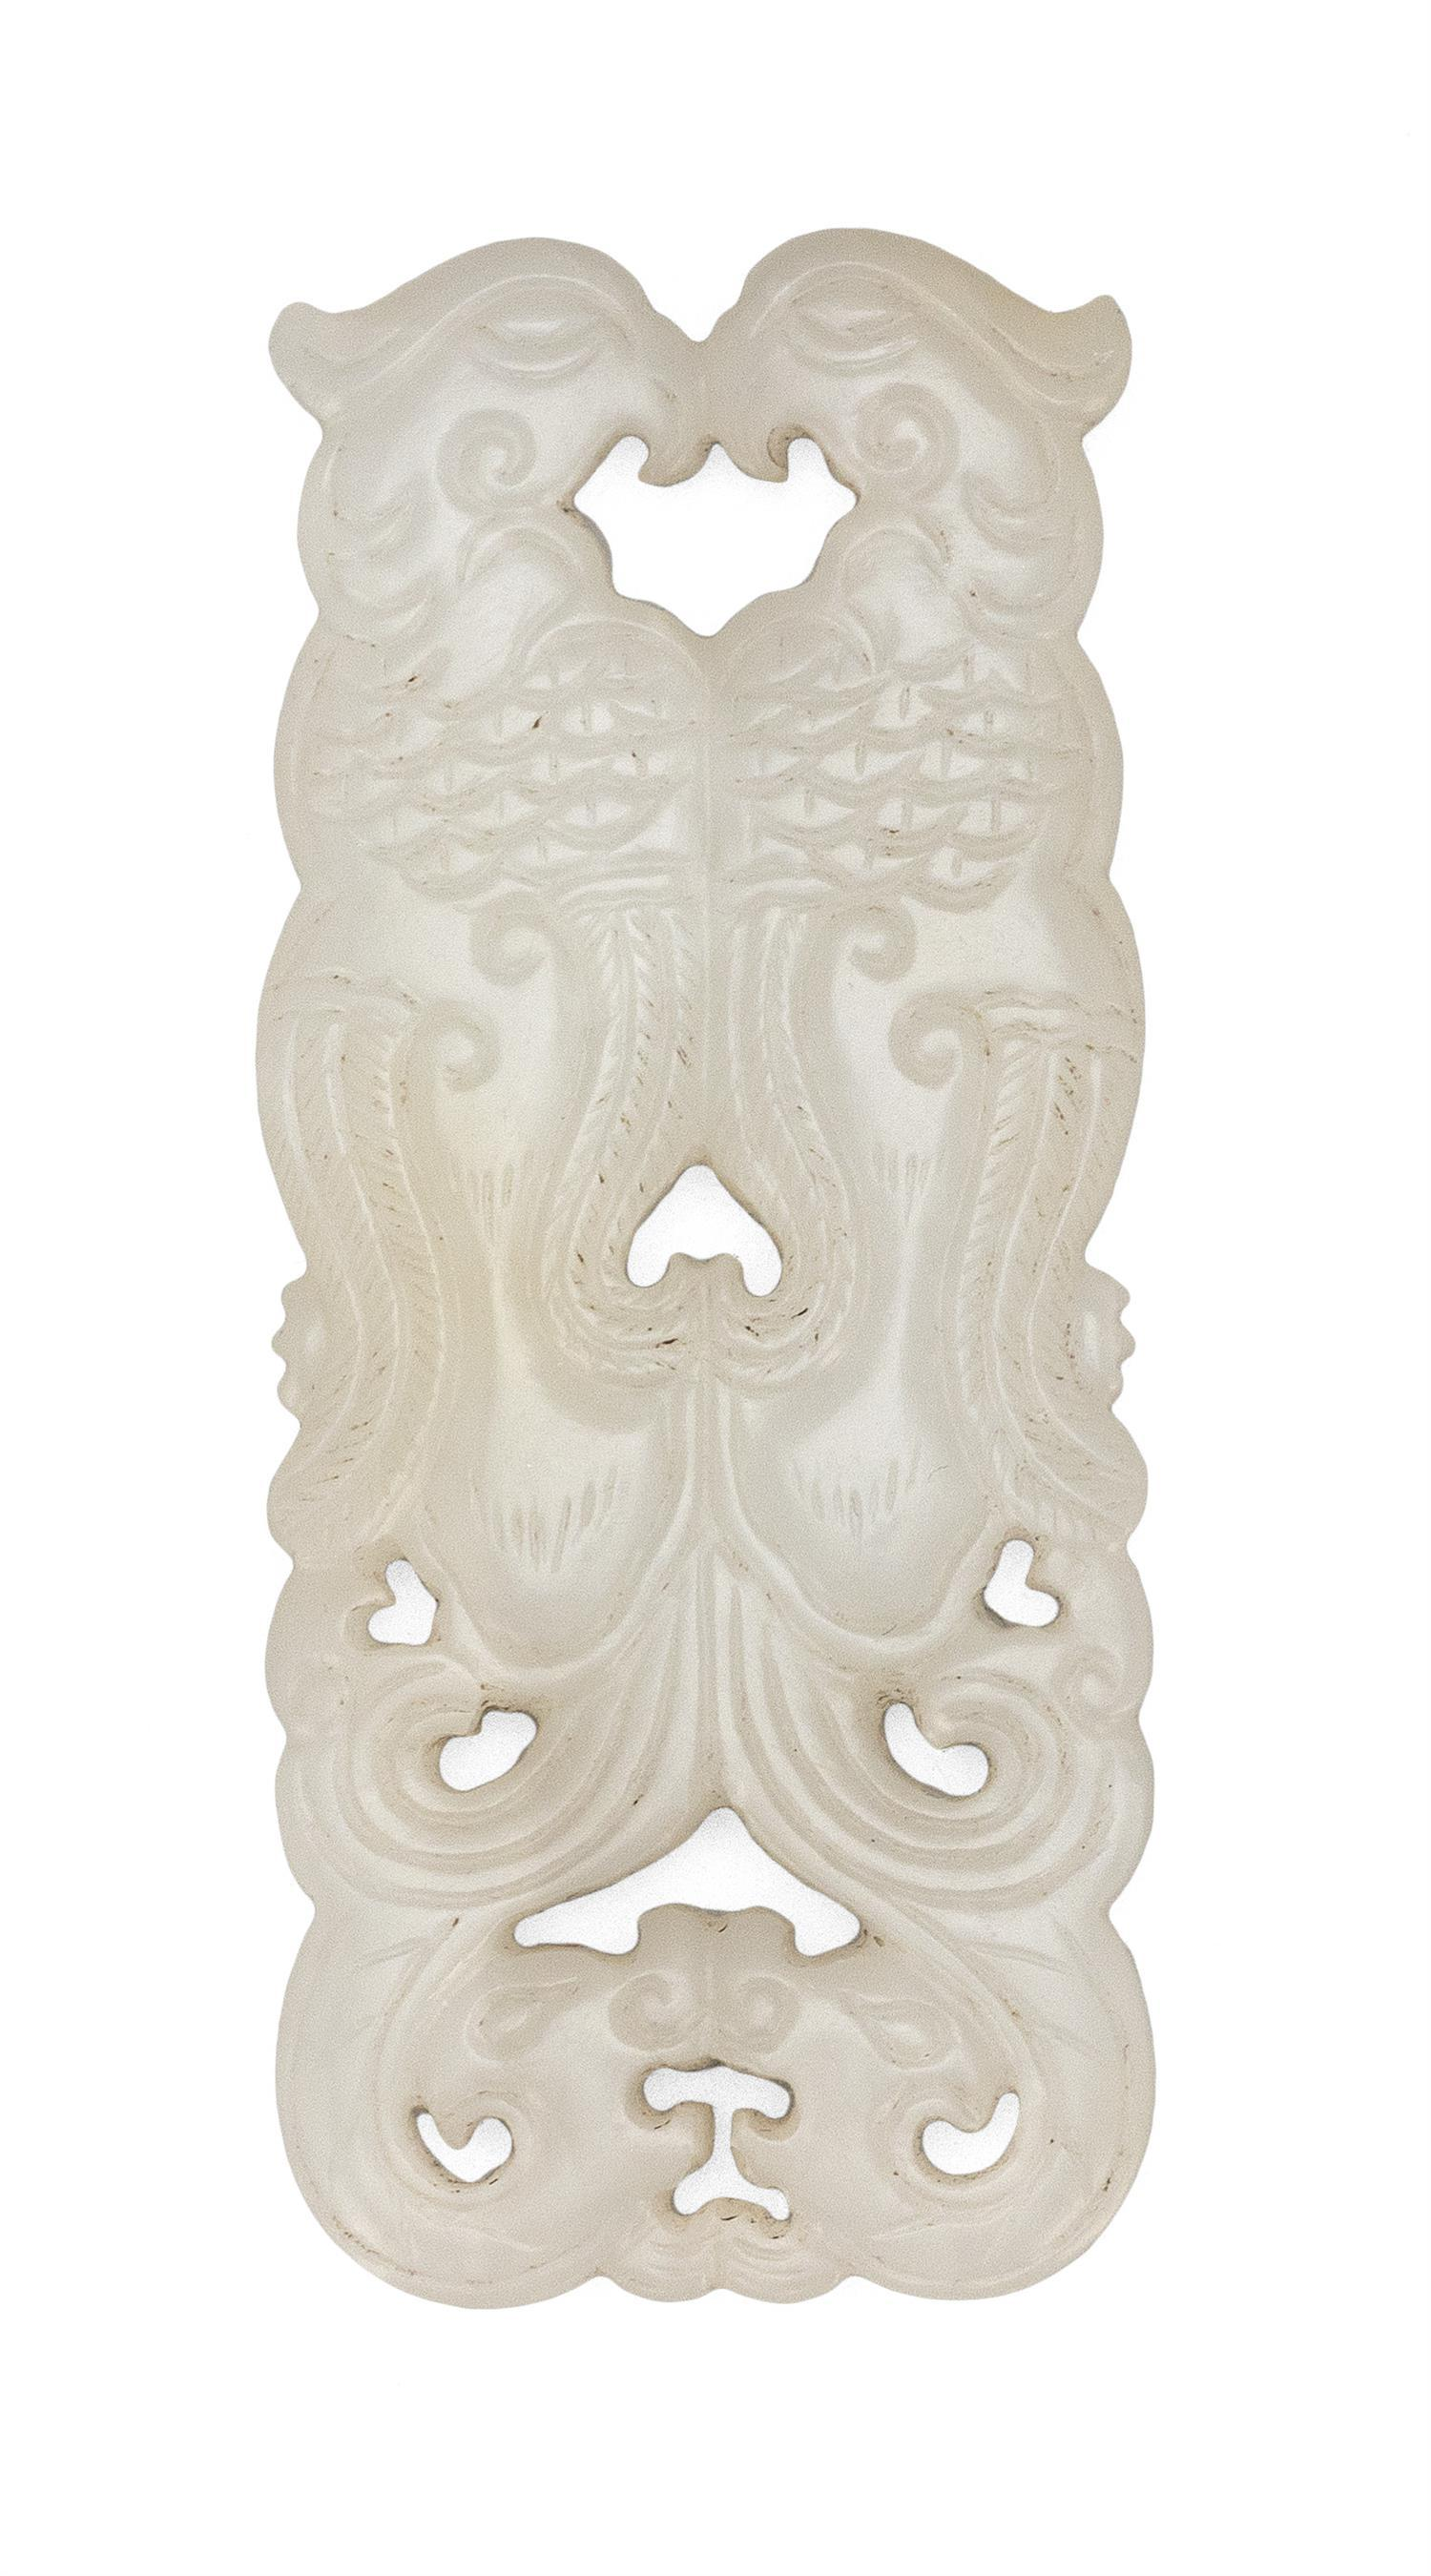 RARE ICE WHITE FLAWLESS JADE PENDANT Rectangular, with double phoenix design above baby dragons, possibly representing the empress a...